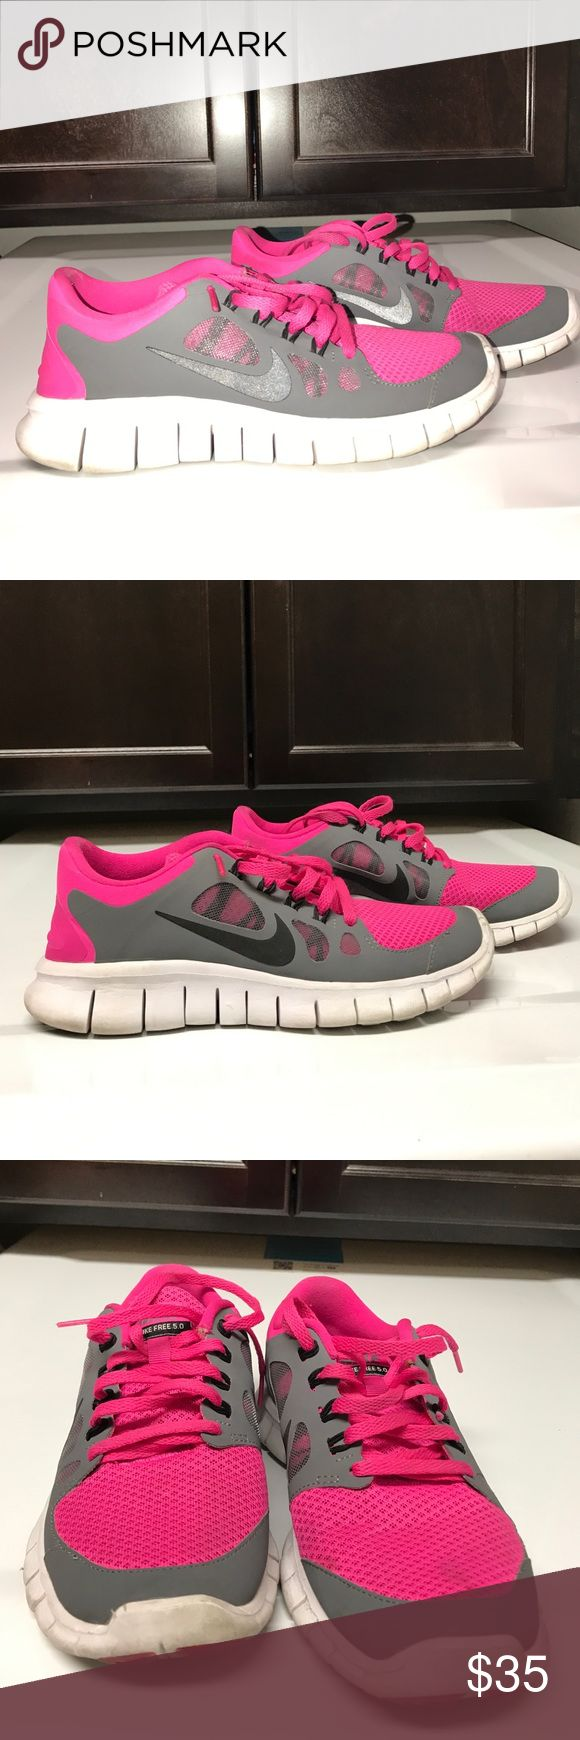 Girl Nike free runner sneakers ✨EUC girls sneakers maybe just need a little cleaning used a few times make me an offer !! Size 4.5 big girl ✨ Nike Shoes Sneakers